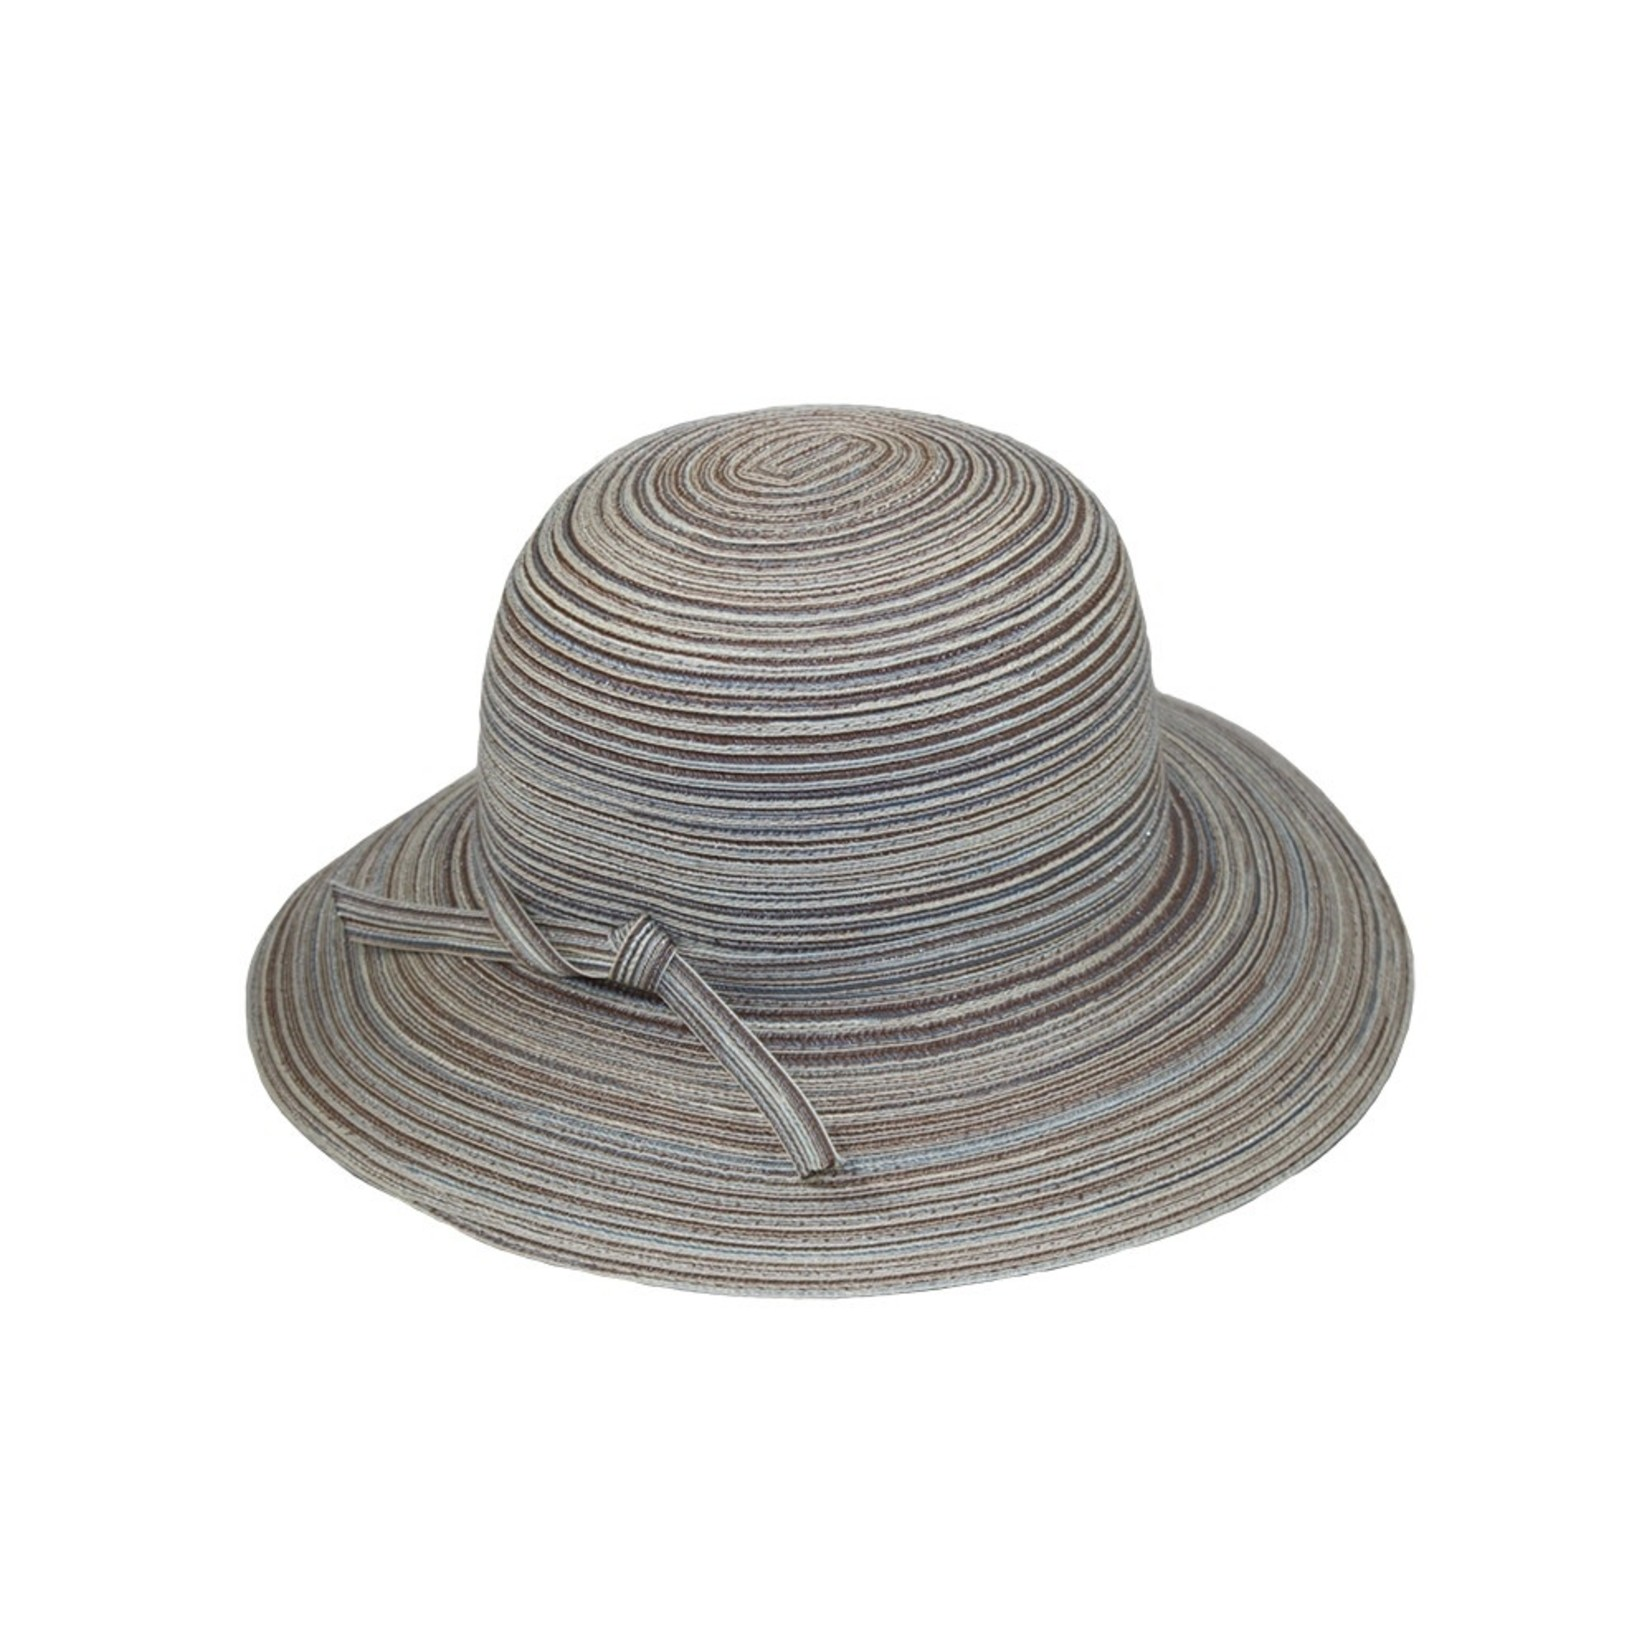 Jeanne Simmons Brown and White Large Brim Bucket Hat